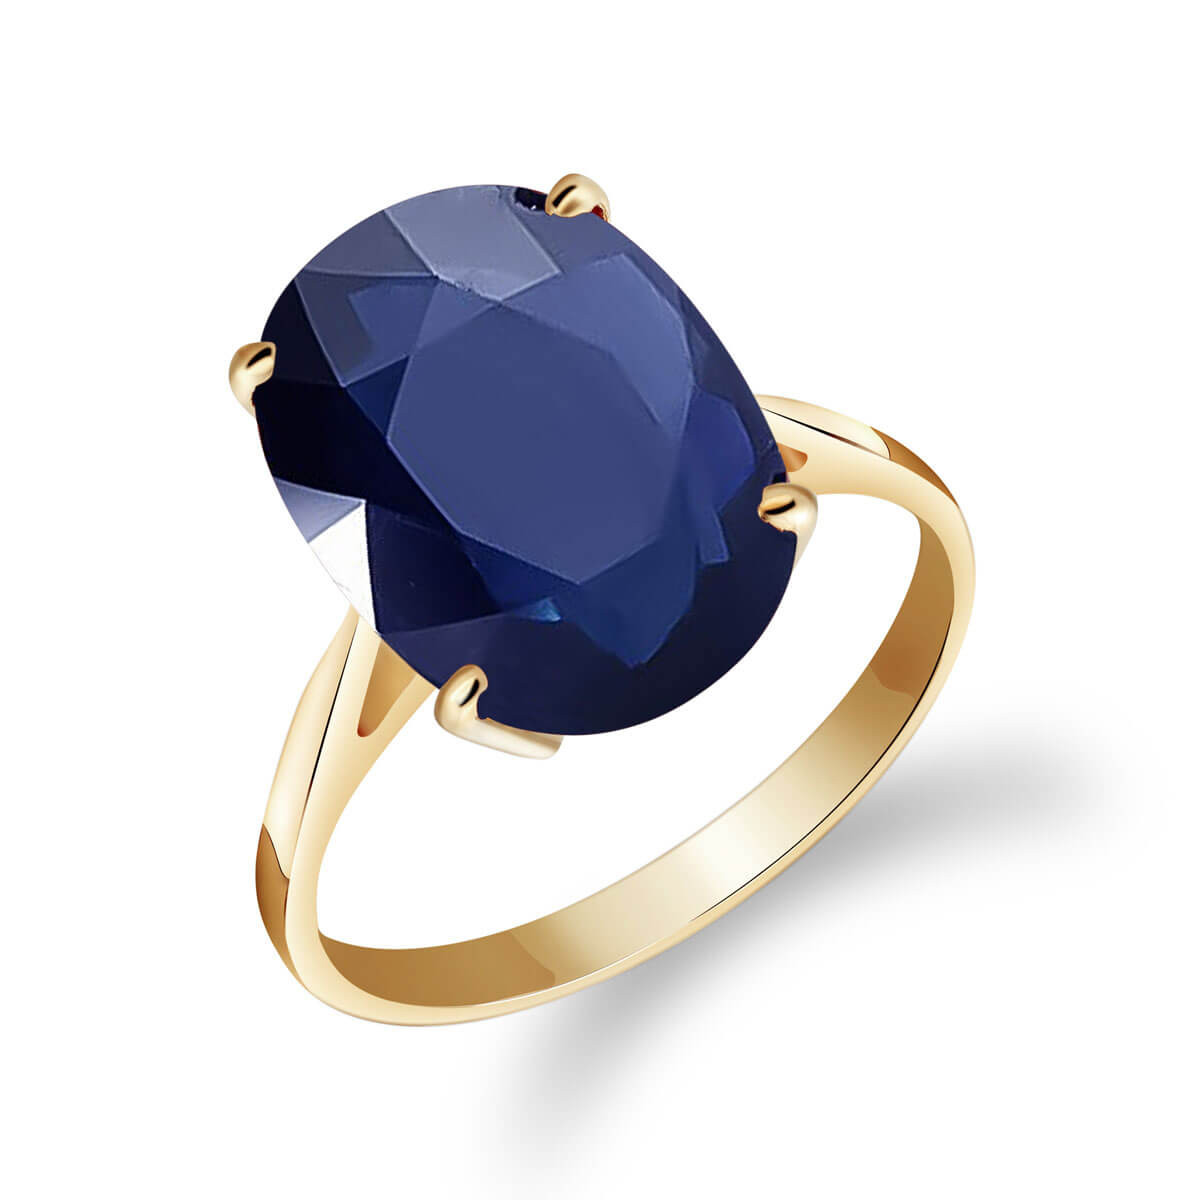 Sapphire Valiant Ring 8.5 ct in 9ct Gold